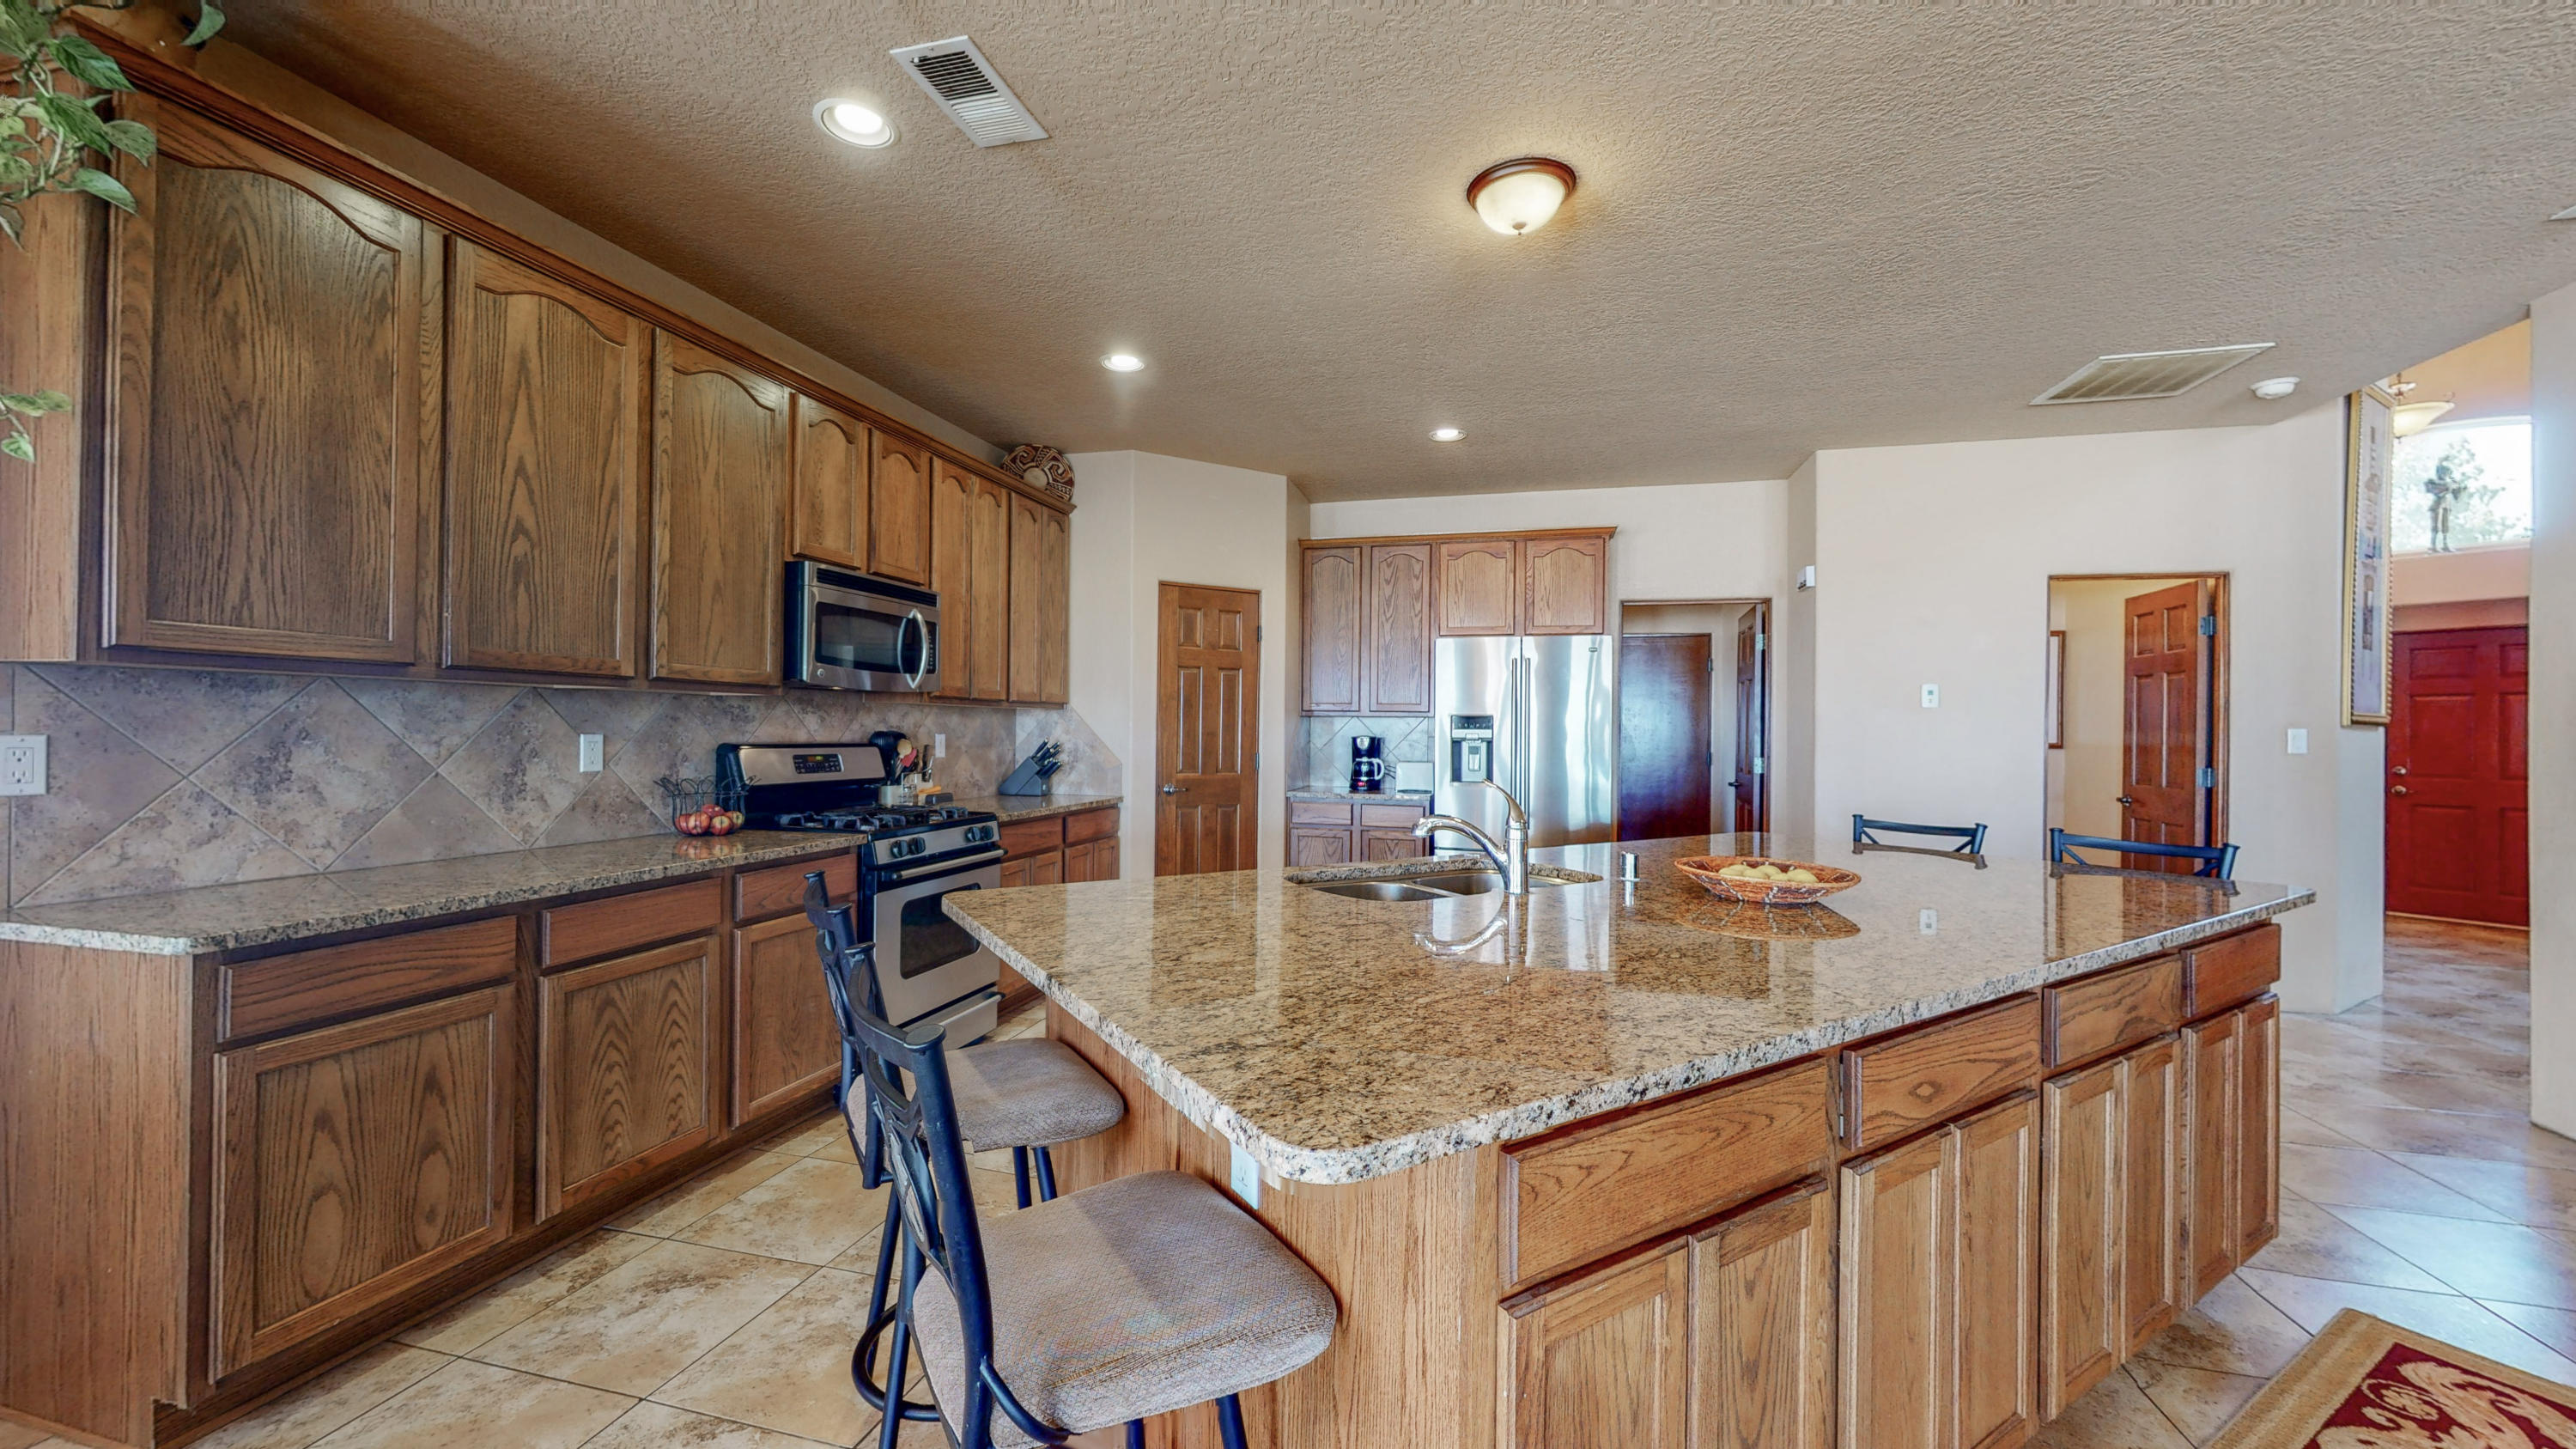 Albuquerque Homes For Sale From 400k To 500k John Mccormack